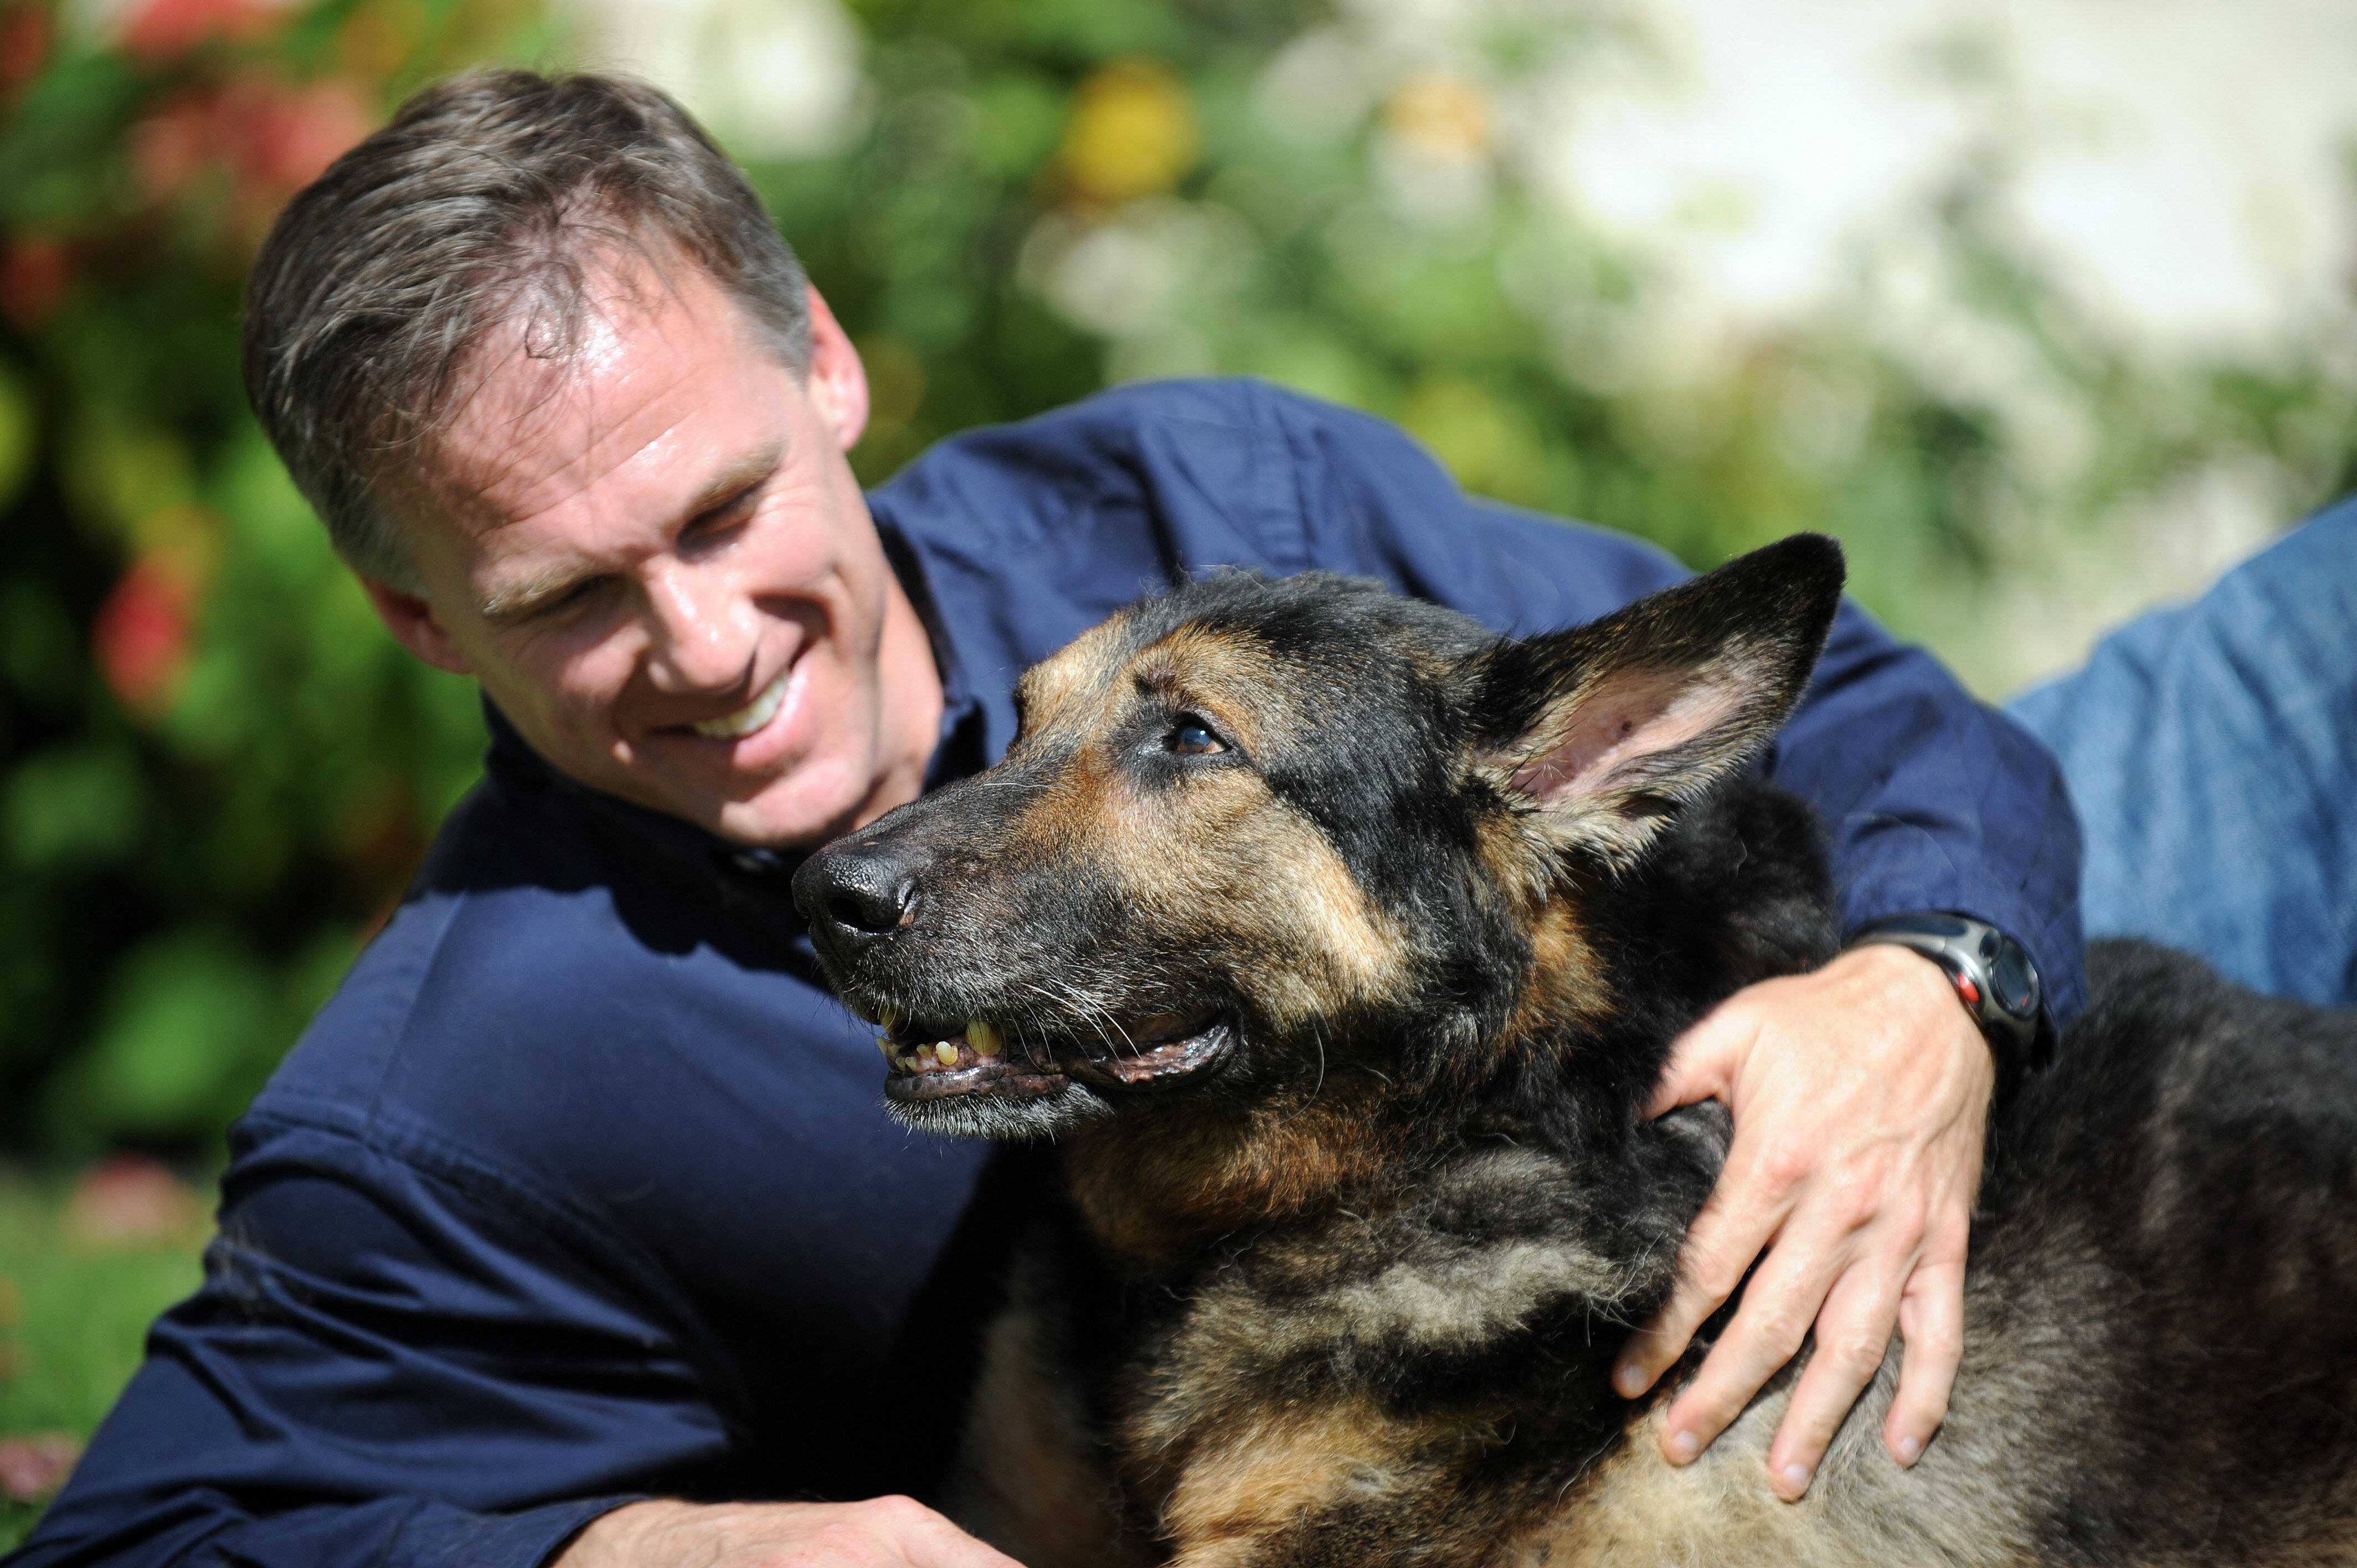 Trakr search and rescue dog lays with his owner